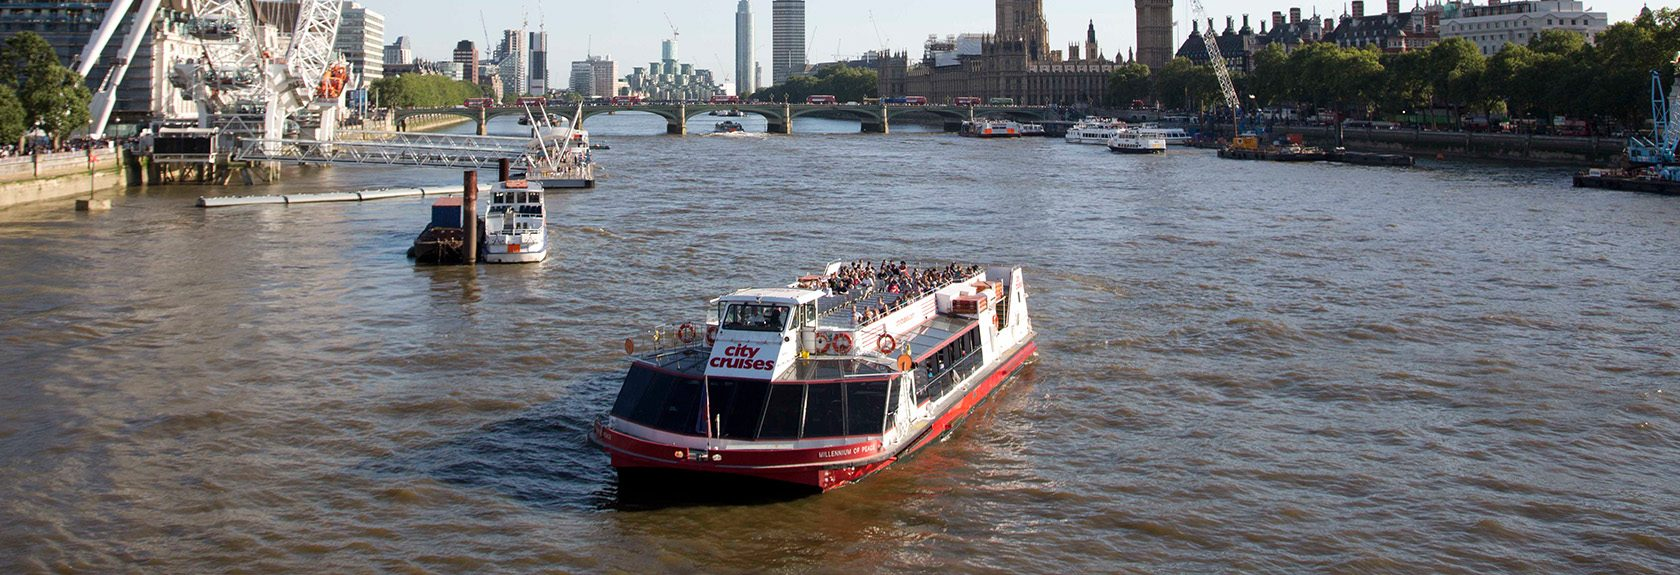 Hop-on-Hop-off stadscruise Londen